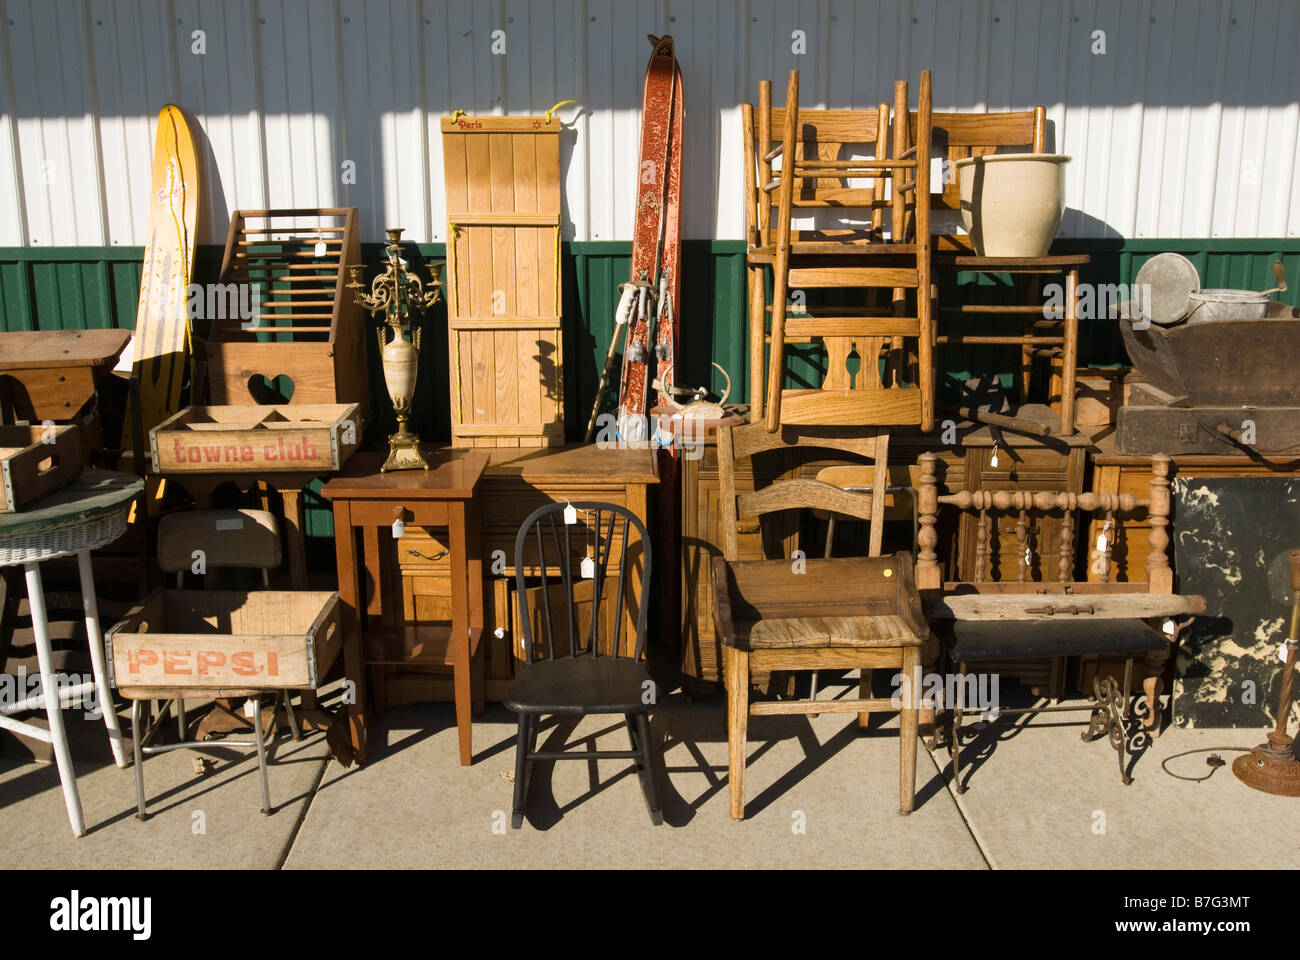 Antique Furniture Junk Stock Photos Antique Furniture Junk Stock - Sale  Antique Furniture - Antique Furniture - Who Buys Antique Furniture Antique Furniture